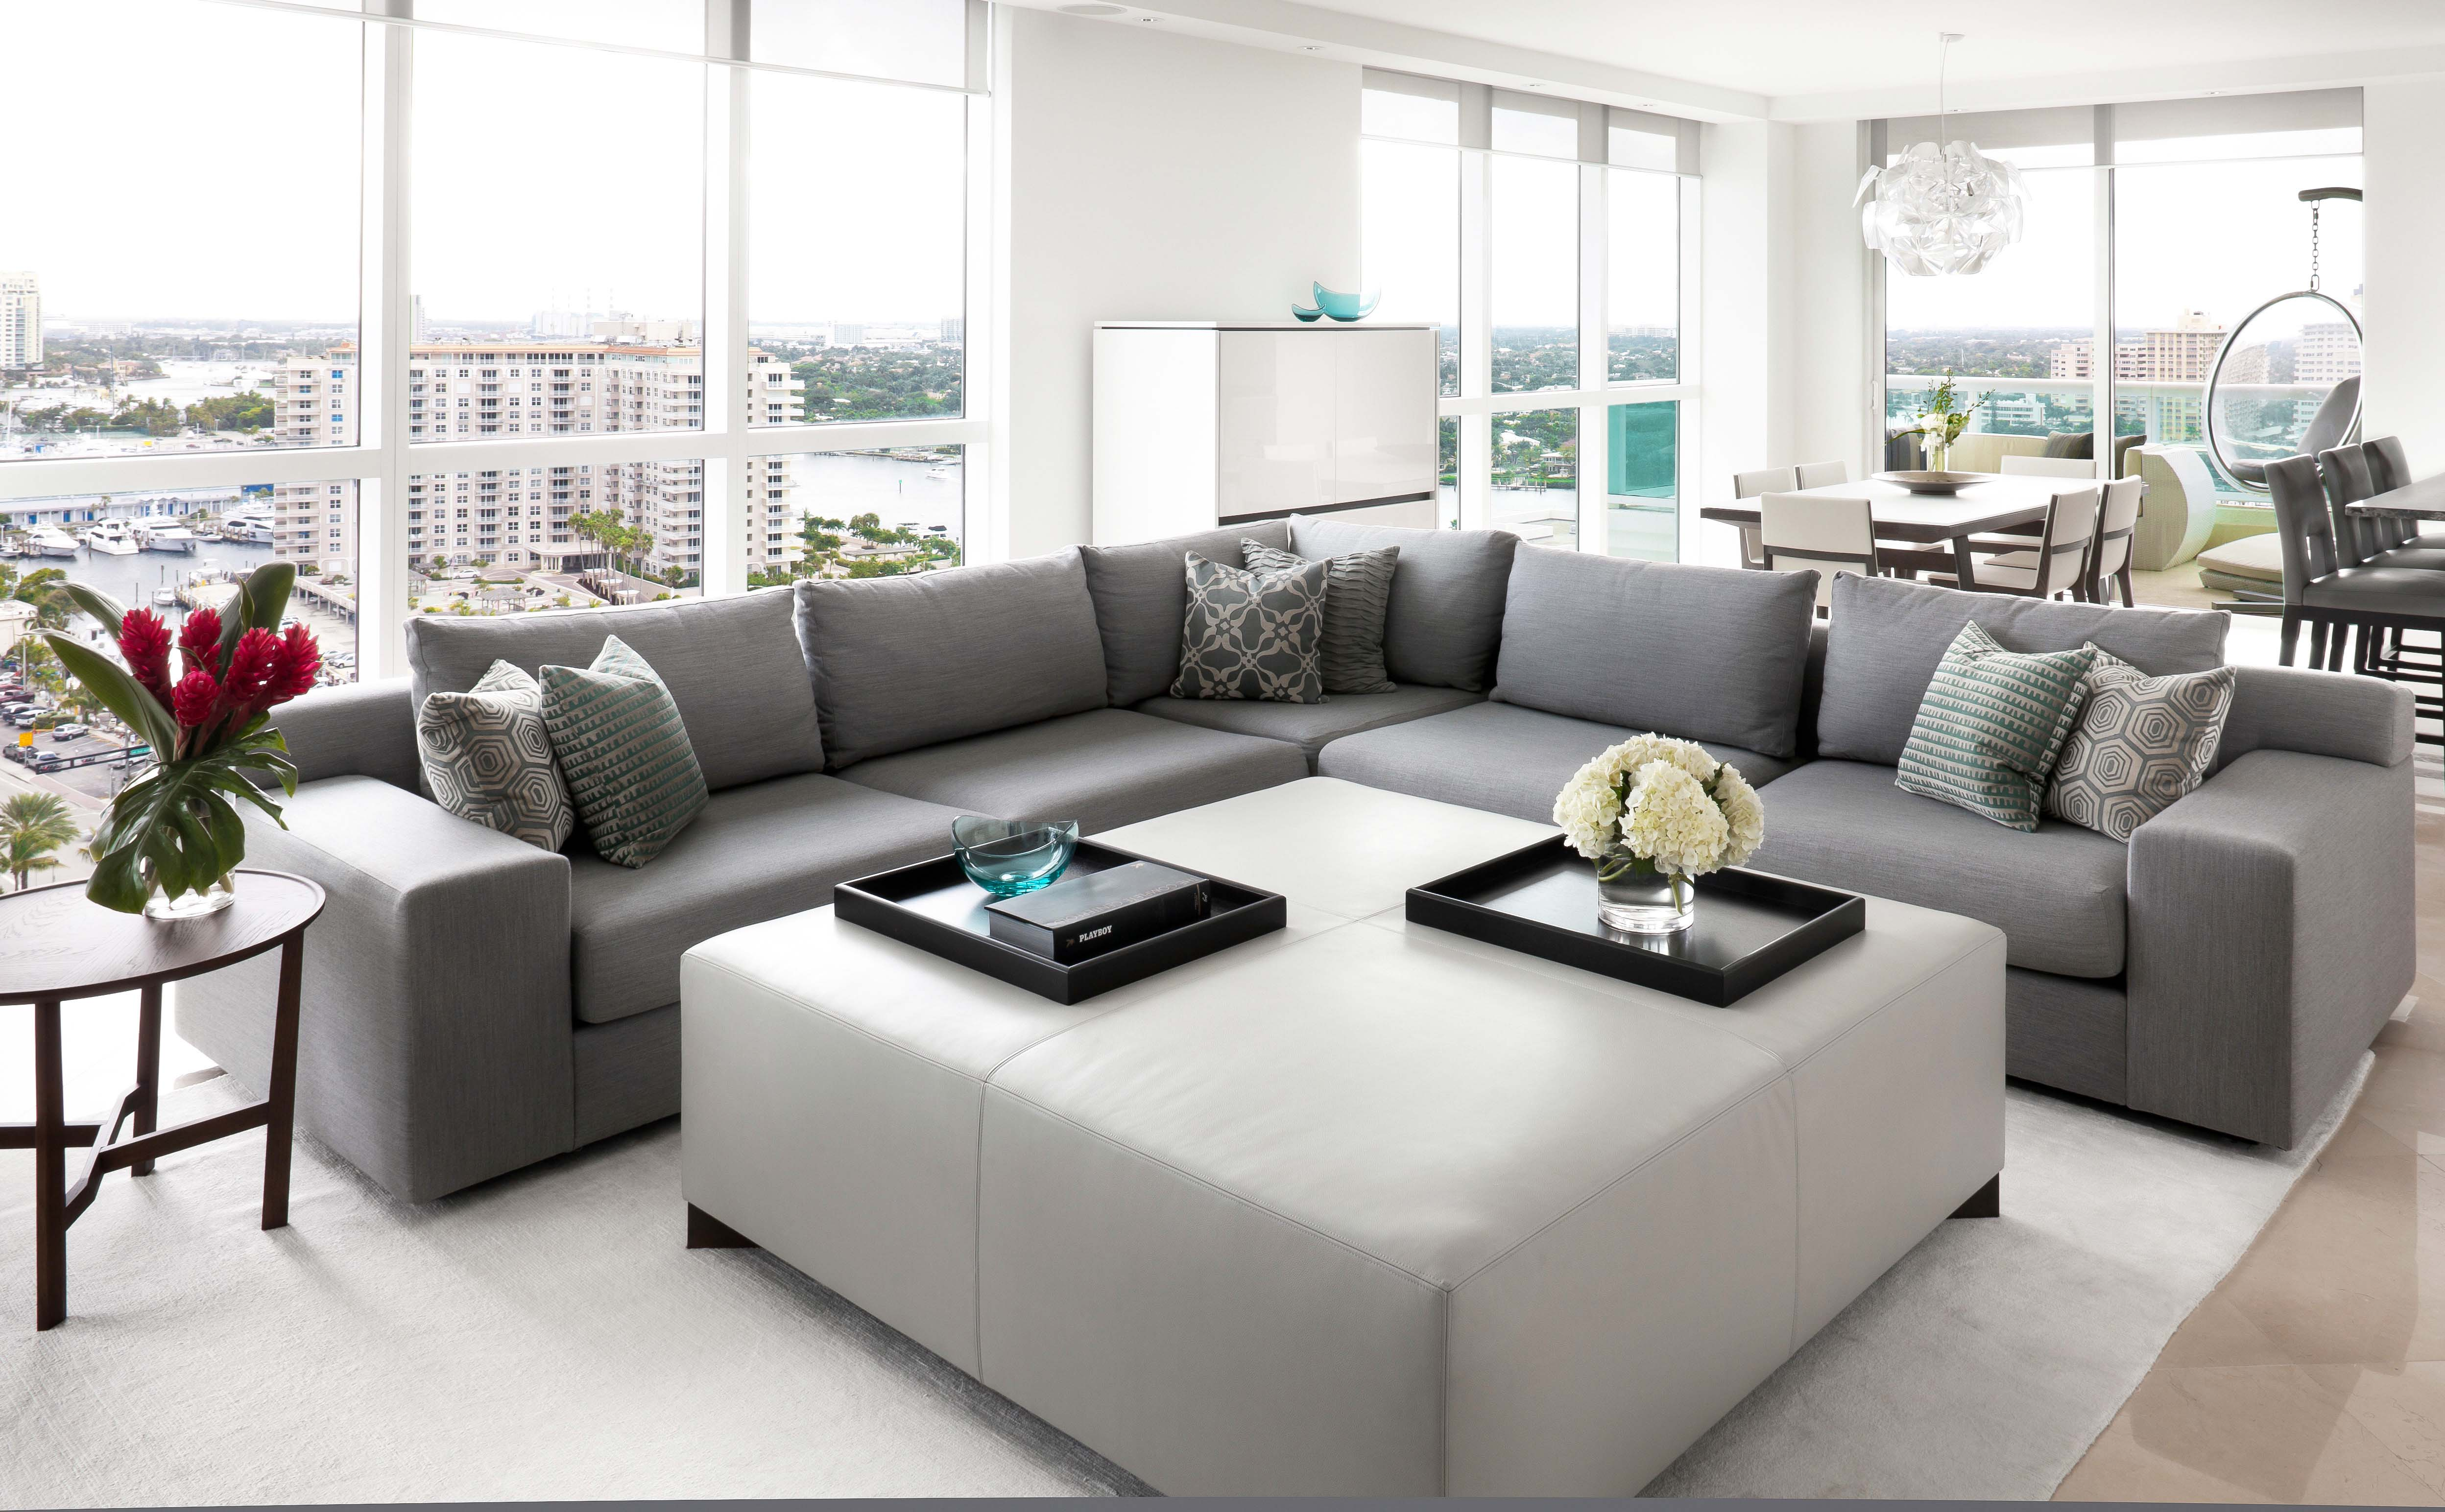 furniture-for-modern-house-with-neutral-color-schemes-in-modern-grey-sectional-sofa-for-living-room-furniture-also-large-square-fabric-coffee-table-with-rug-area